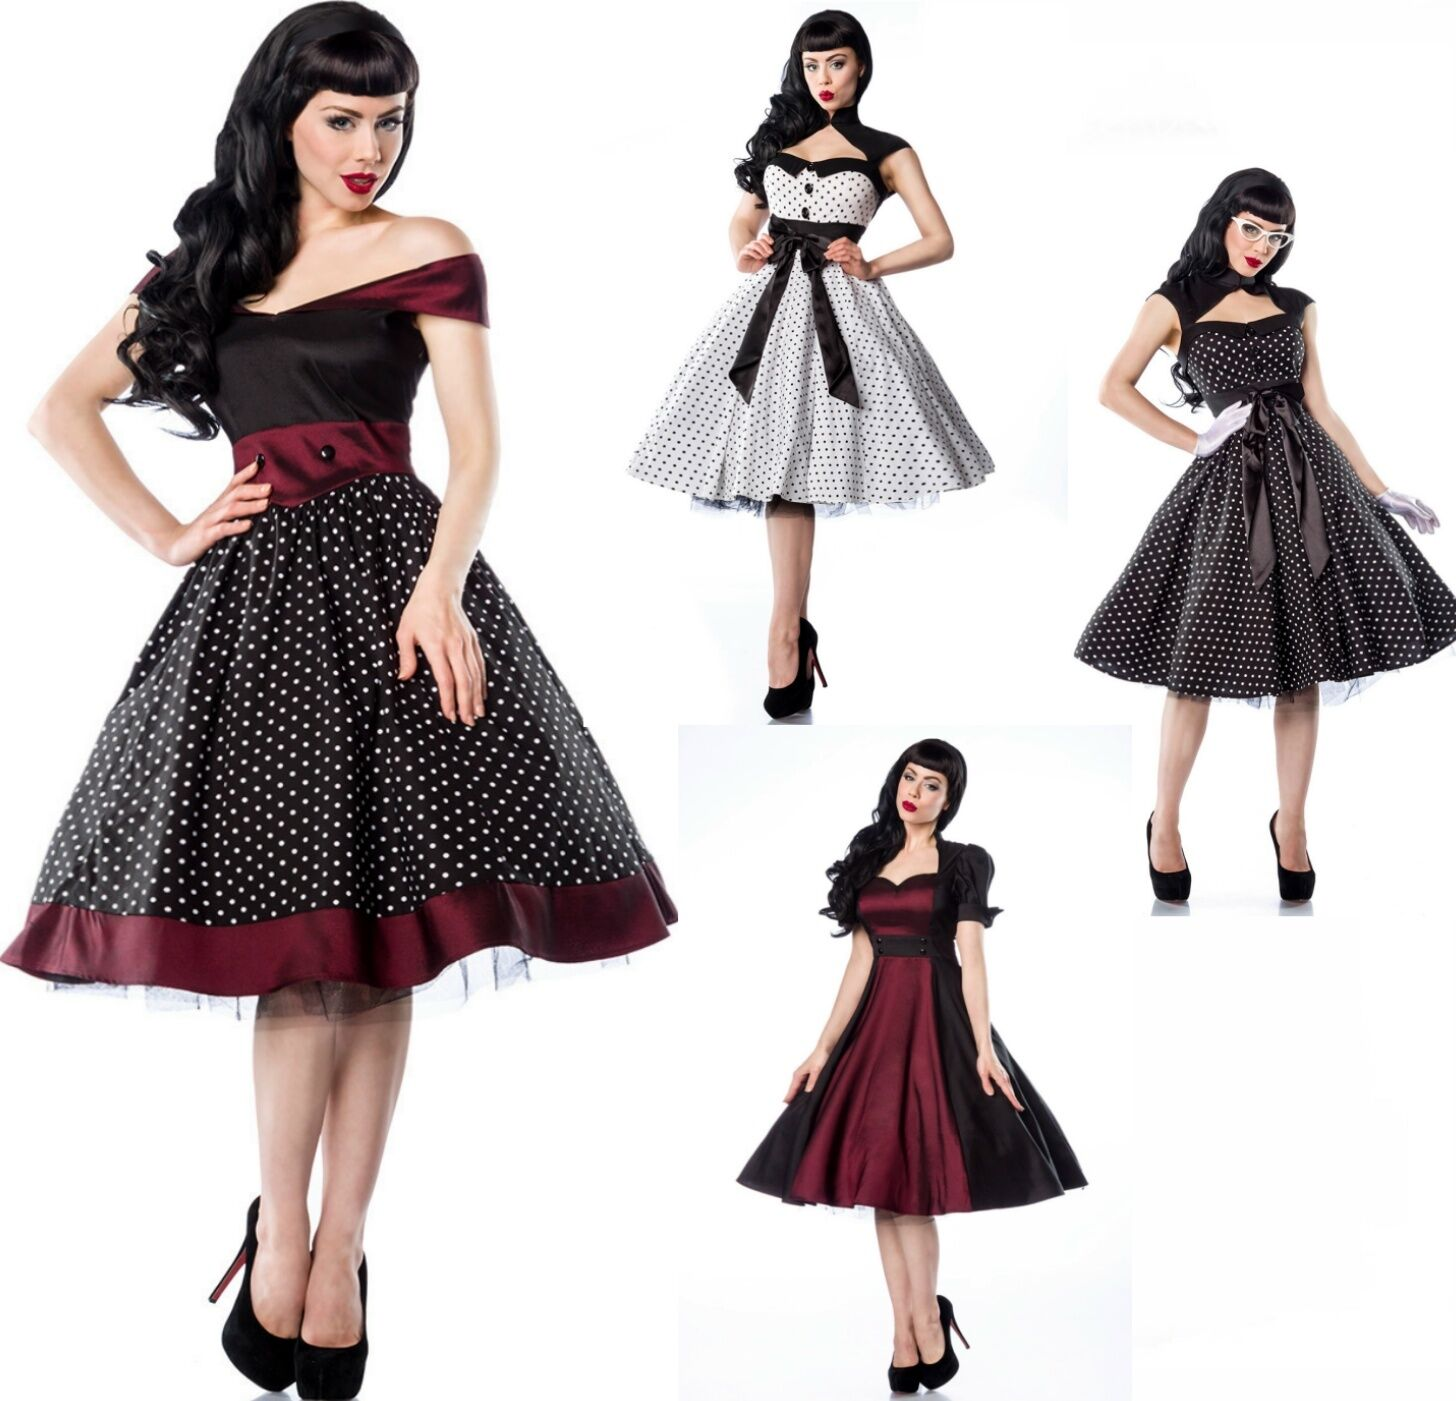 atx pin up vintage 50er kleid rockabilly tanzkleid. Black Bedroom Furniture Sets. Home Design Ideas